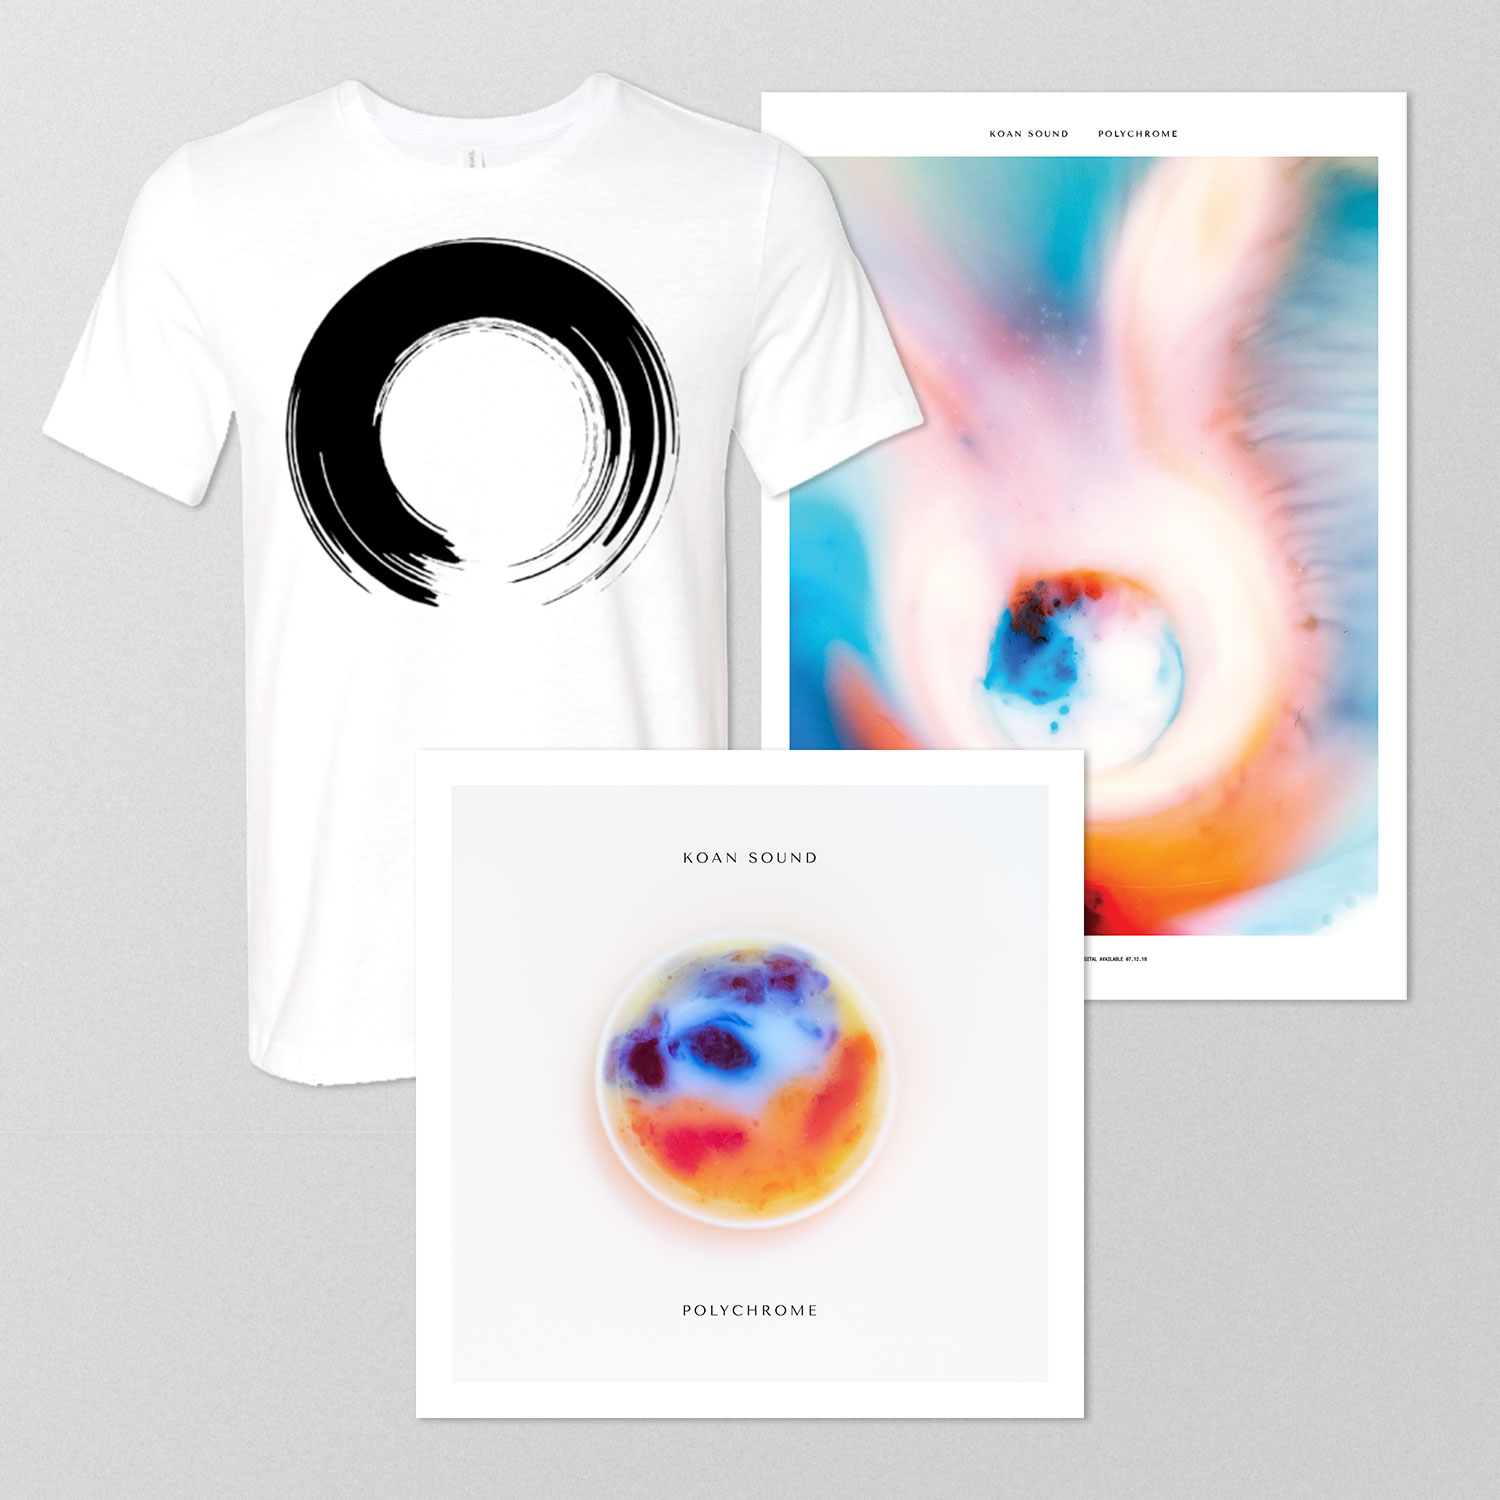 Polychrome Double LP + 'Enso' T-Shirt + Poster - KOAN Sound USD